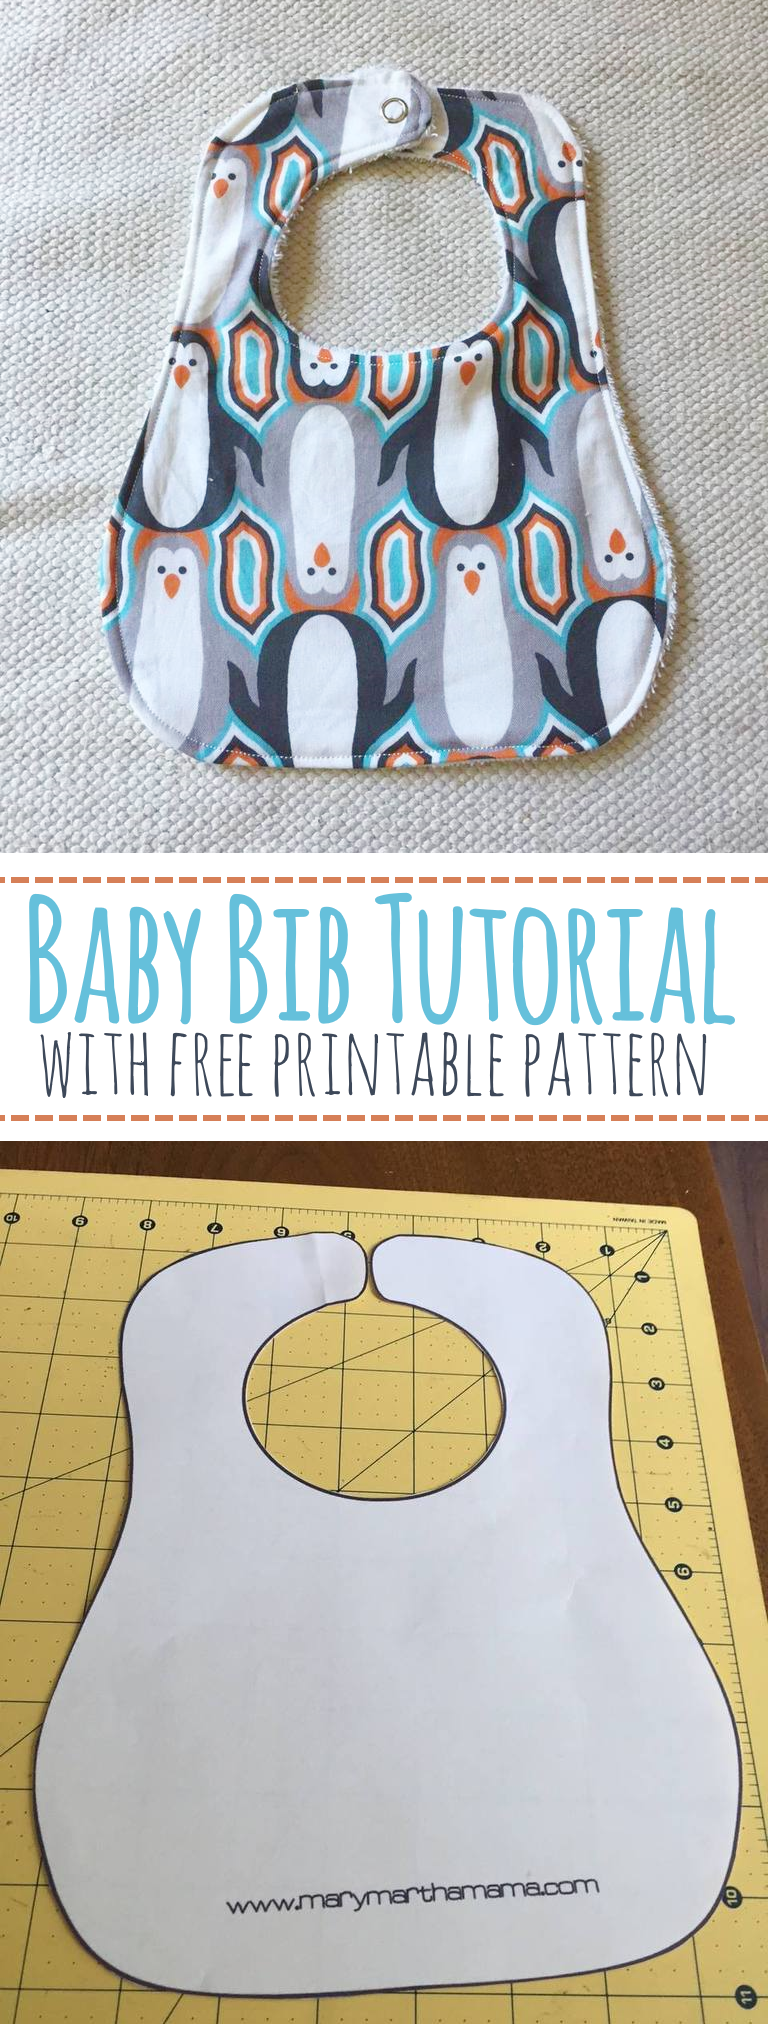 Baby bib tutorial with free printable pattern mary martha mama baby bib tutorial with free printable pattern mary martha mama how to make a bankloansurffo Image collections